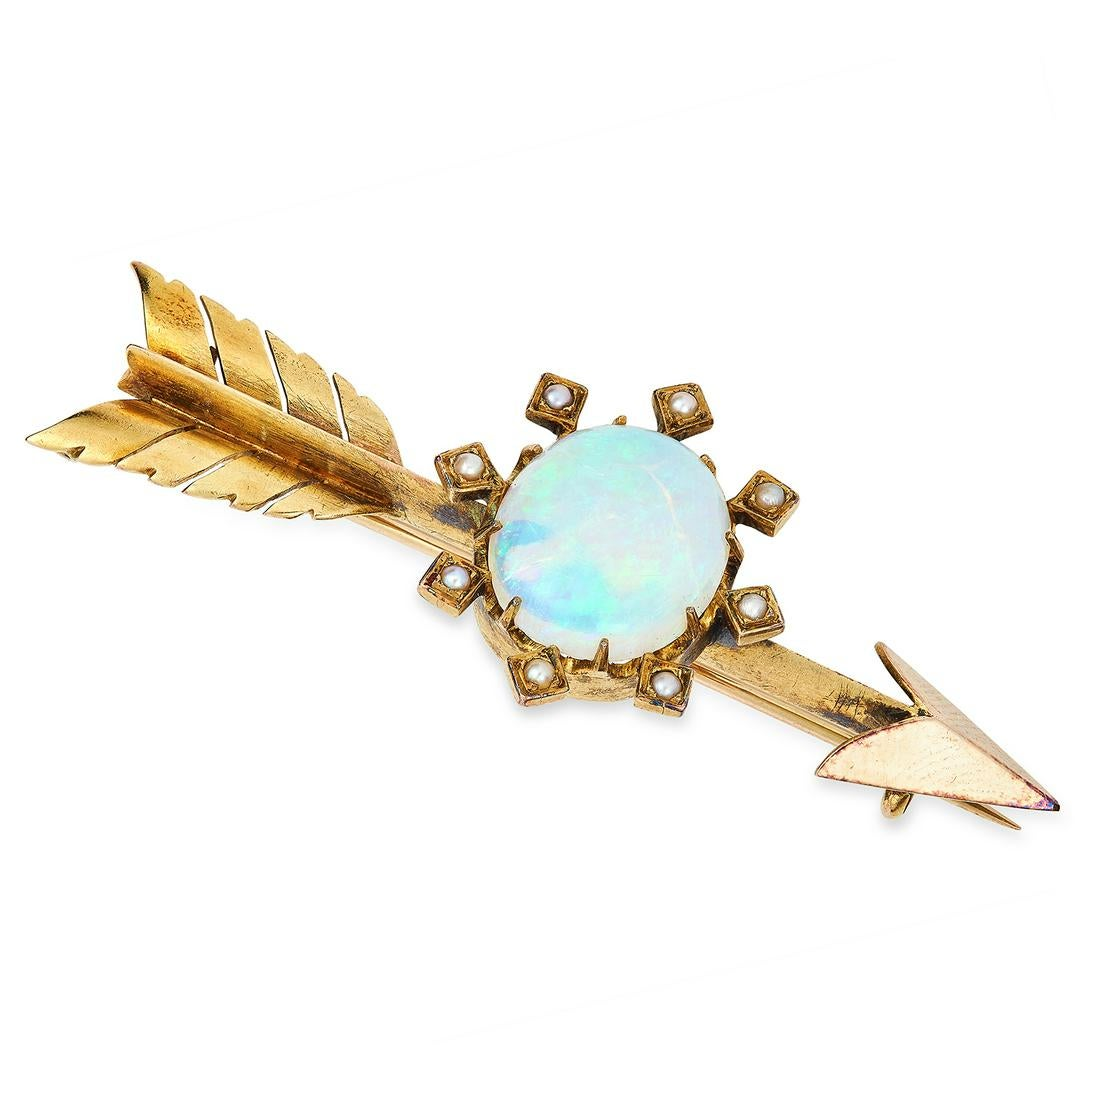 AN ANTIQUE OPAL AND PEARL ARROW BROOCH in yellow gold, set with an oval cabochon opal accented by